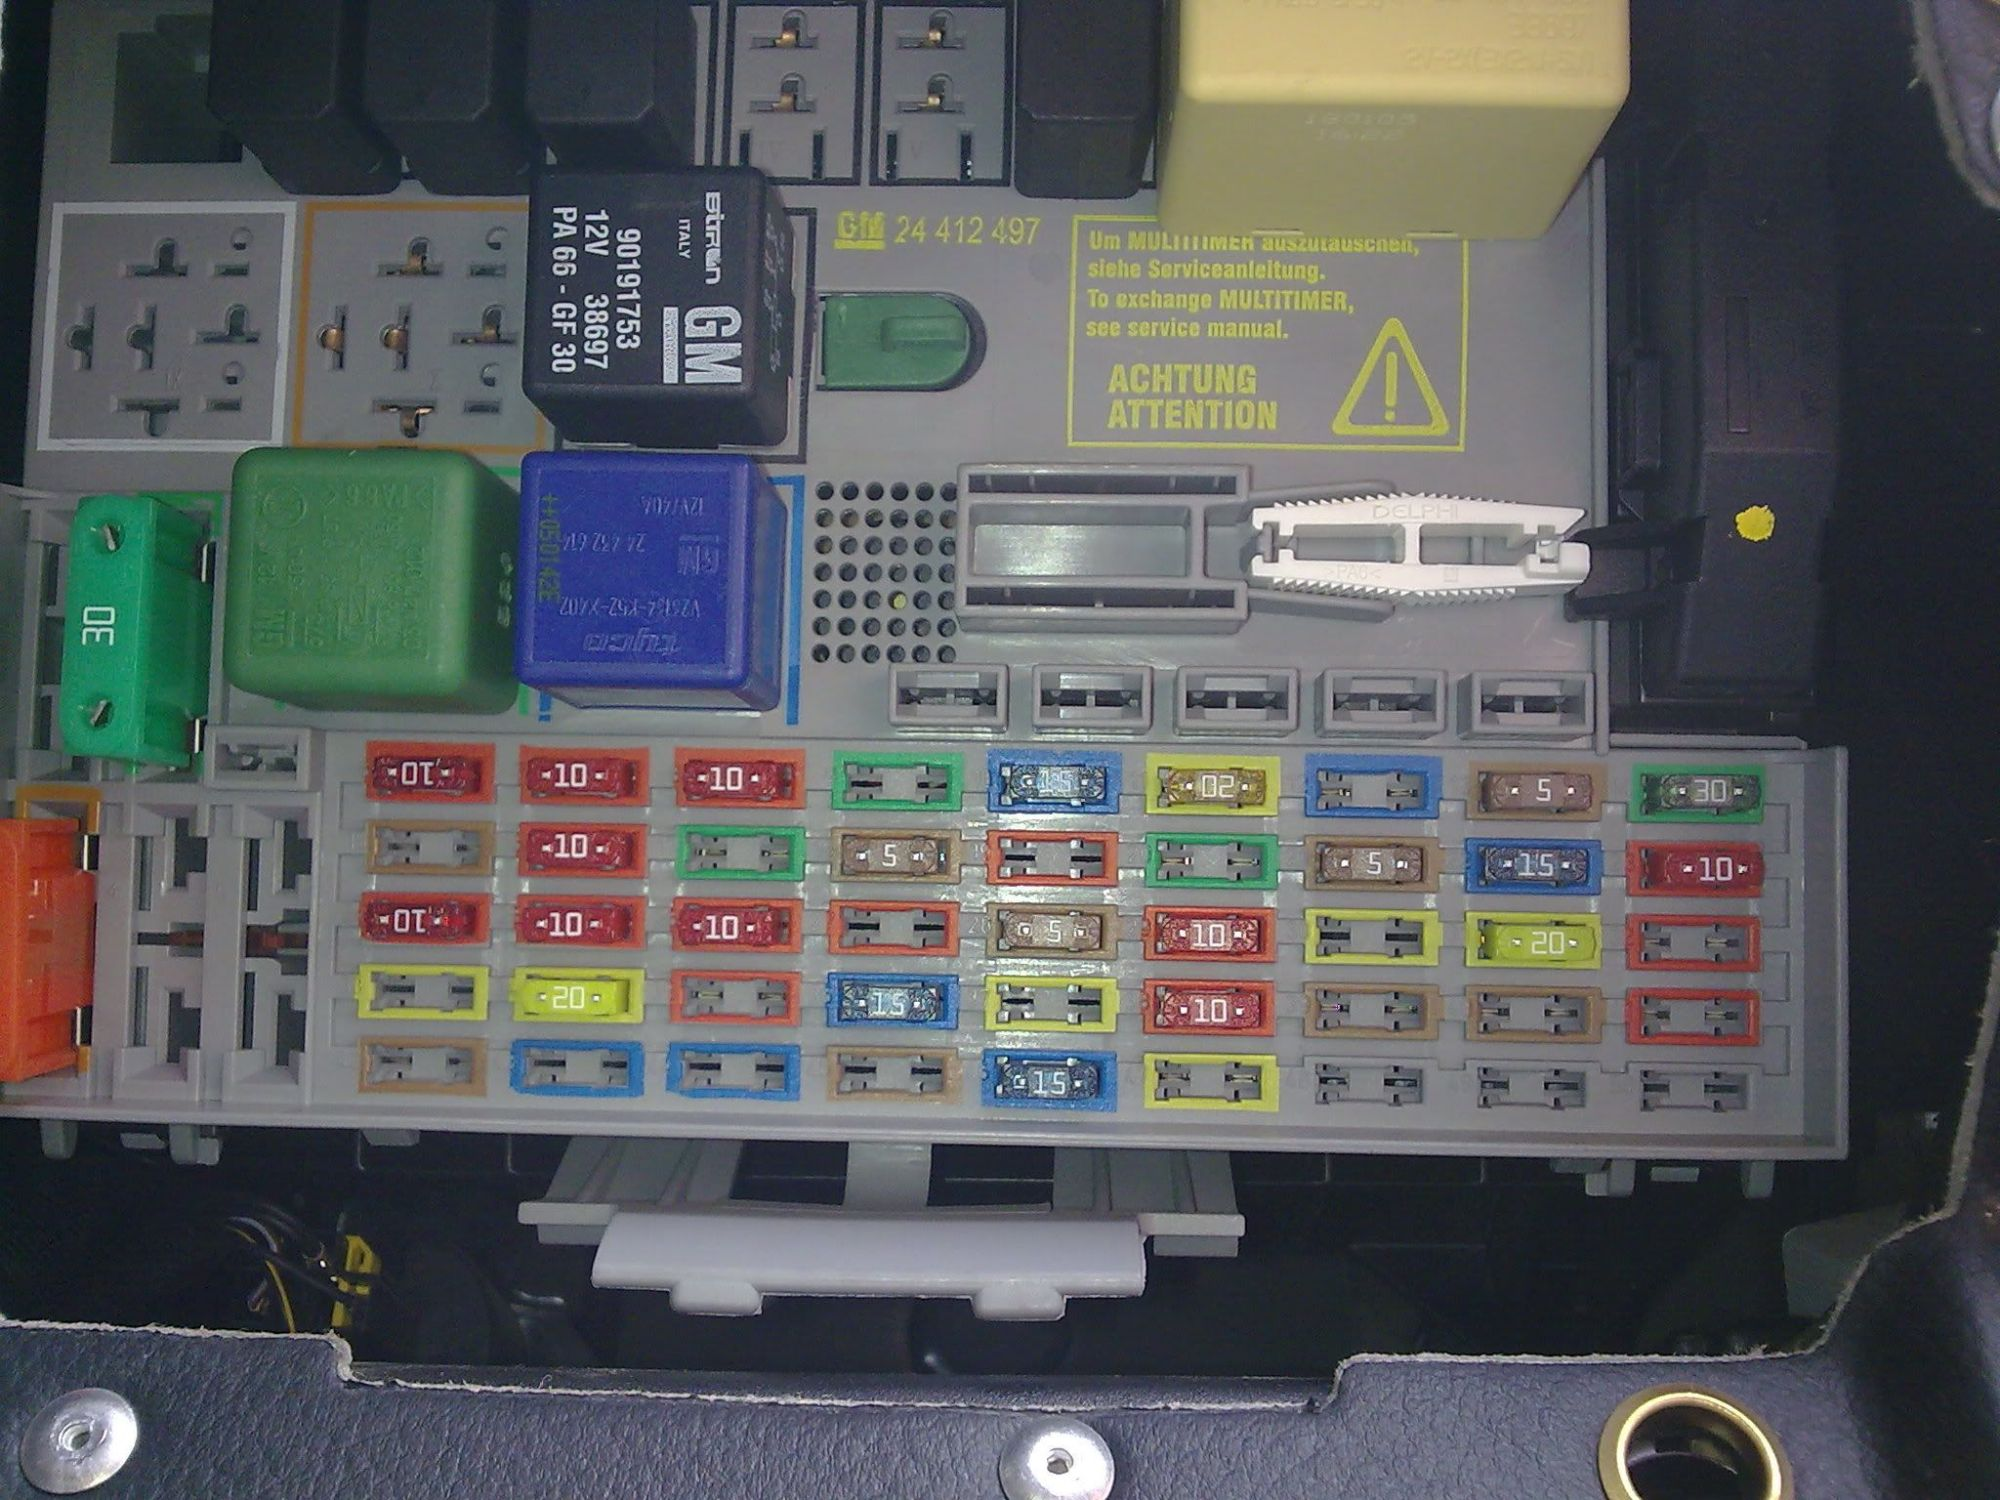 hight resolution of vauxhall zafira 2002 fuse box diagram 37 wiring diagram fuse box opel astra 2006